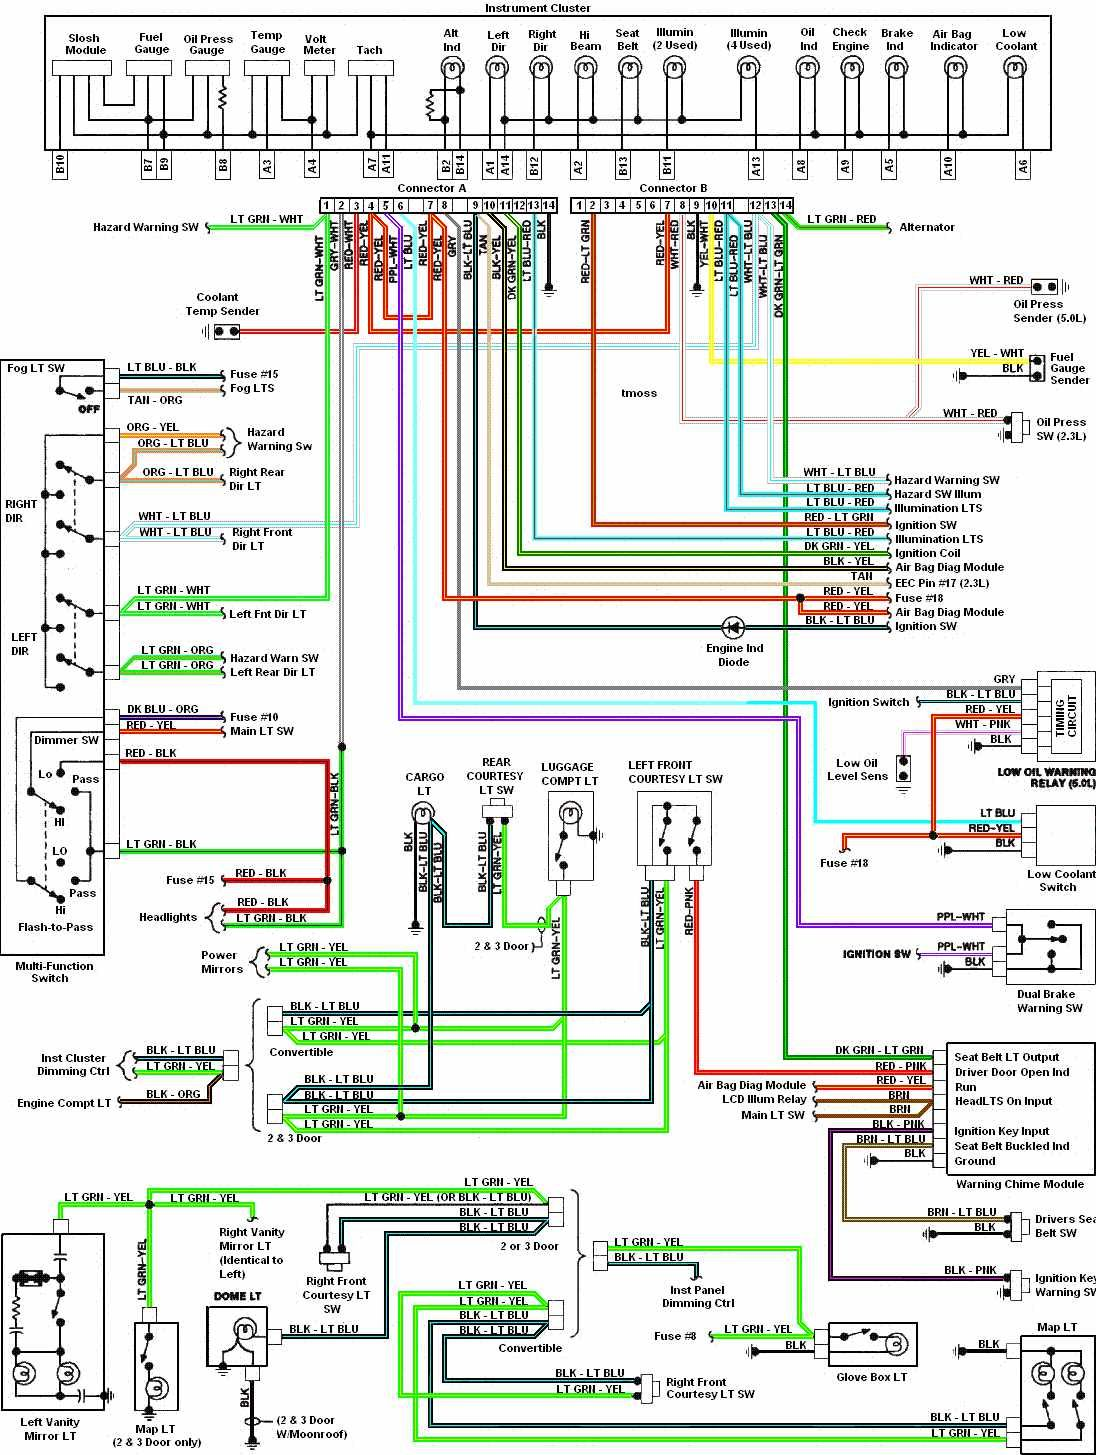 Ford Mustang Wiring Diagram Schematics Toyota Mr2 Power Steering 1993 Pinterest E450